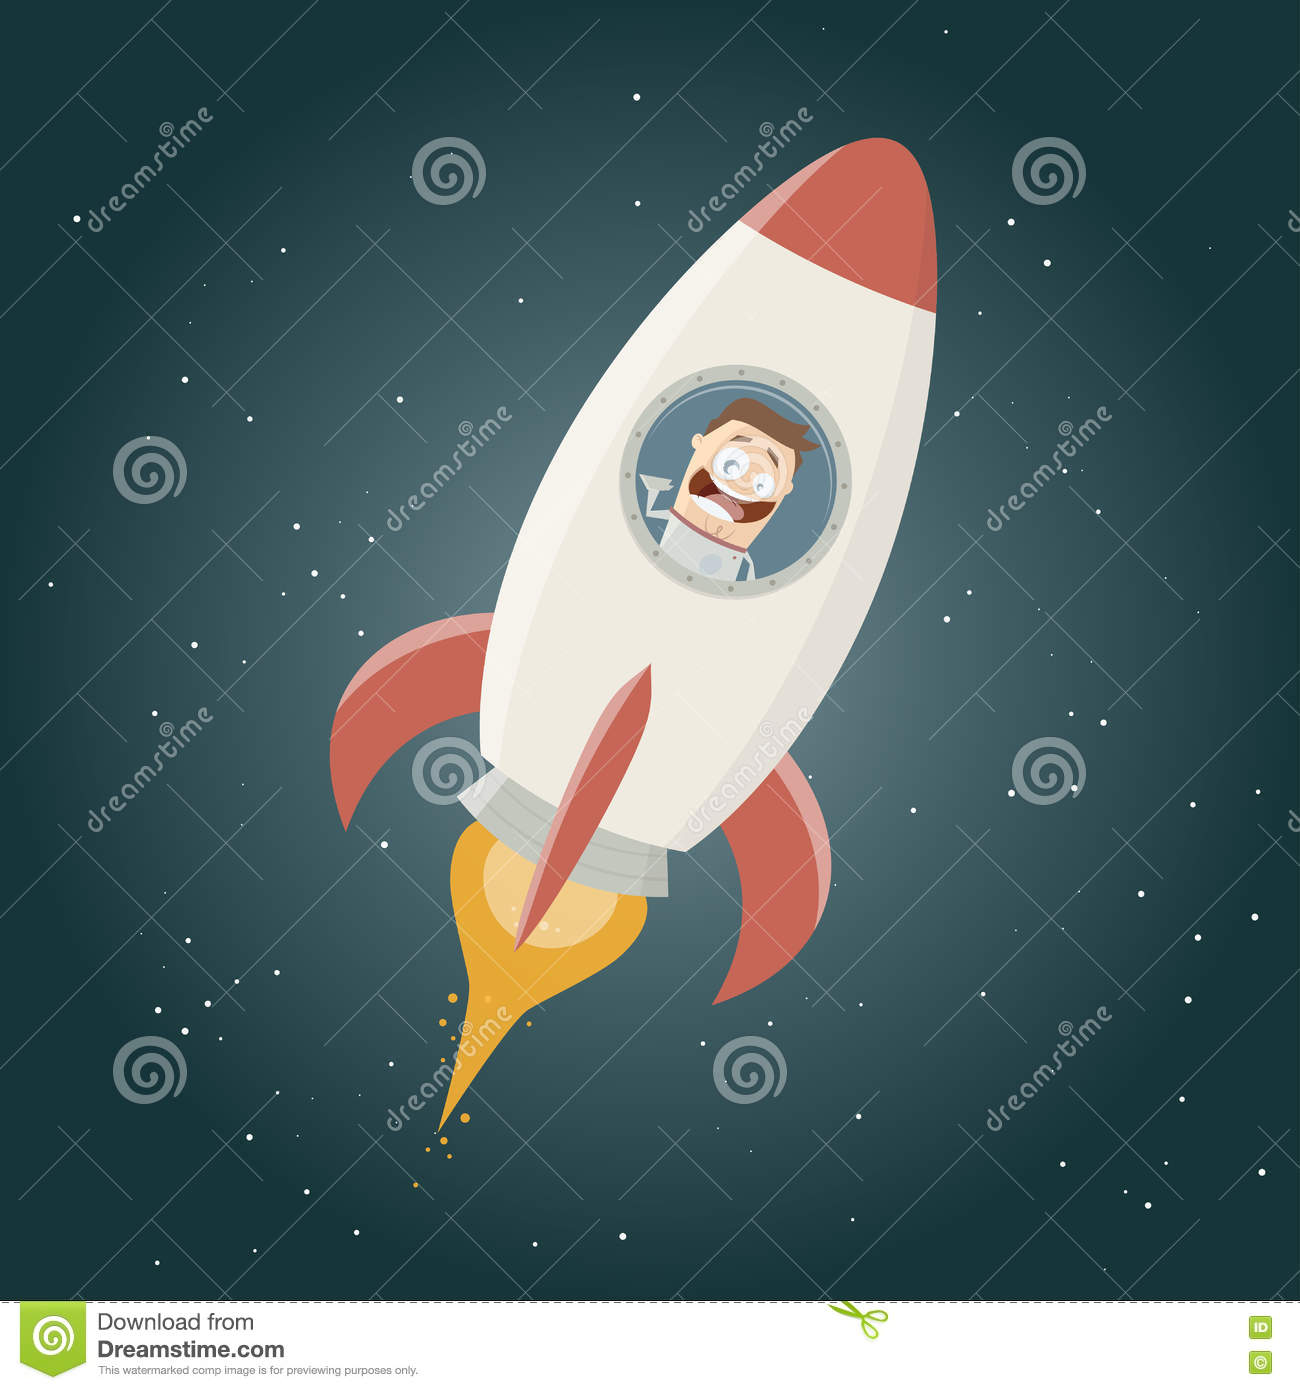 astronaut in space rocket - photo #36